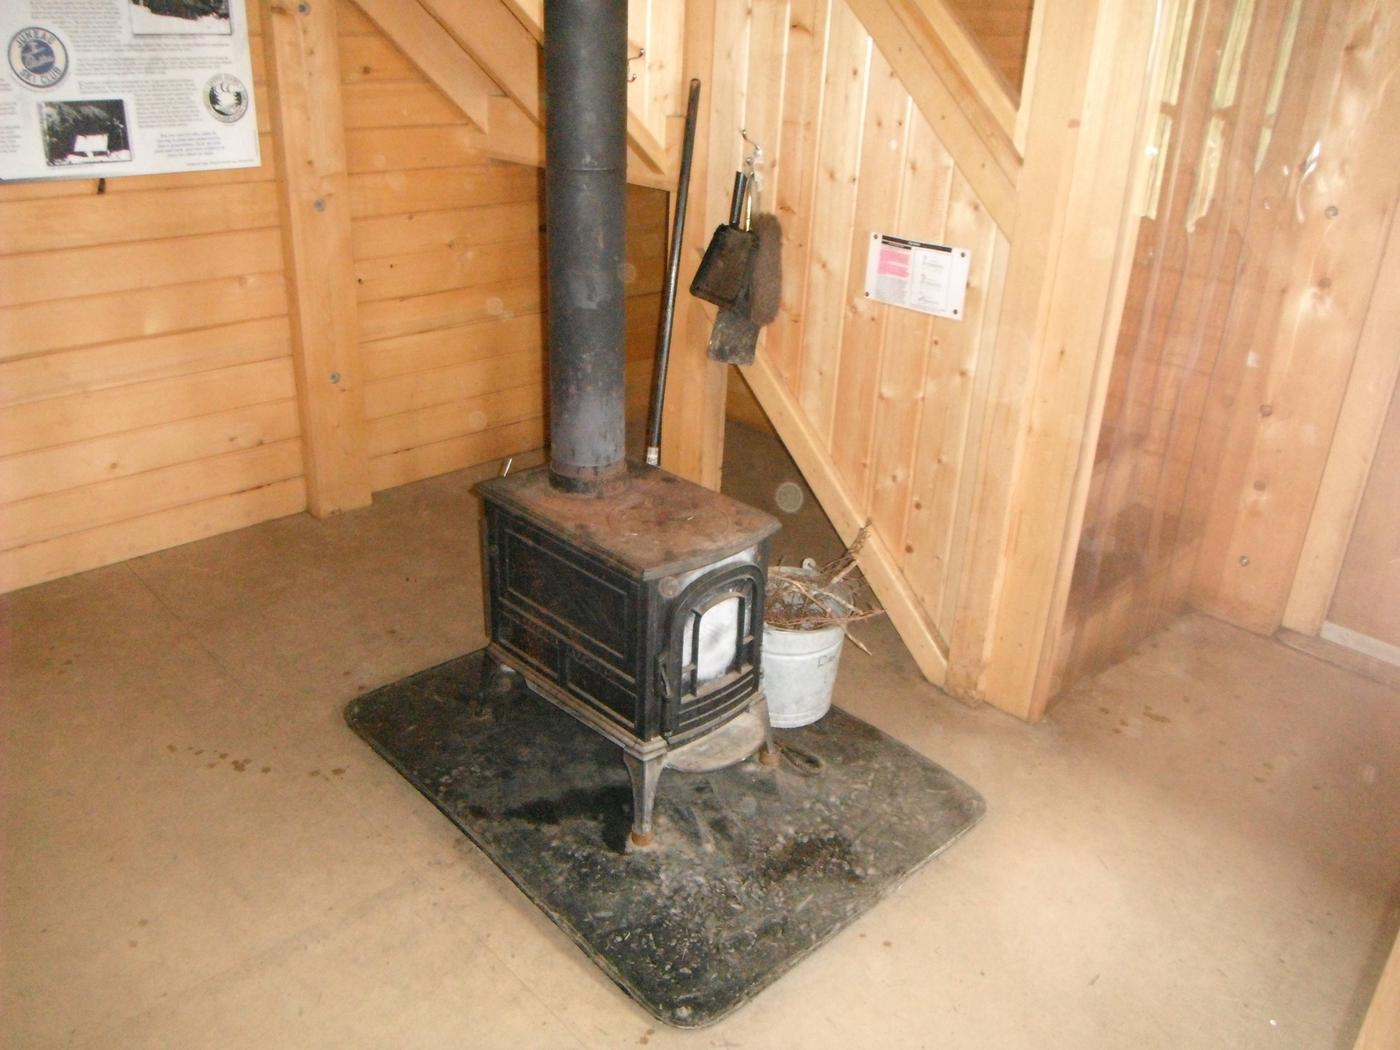 Fire place to supplement the propane heater